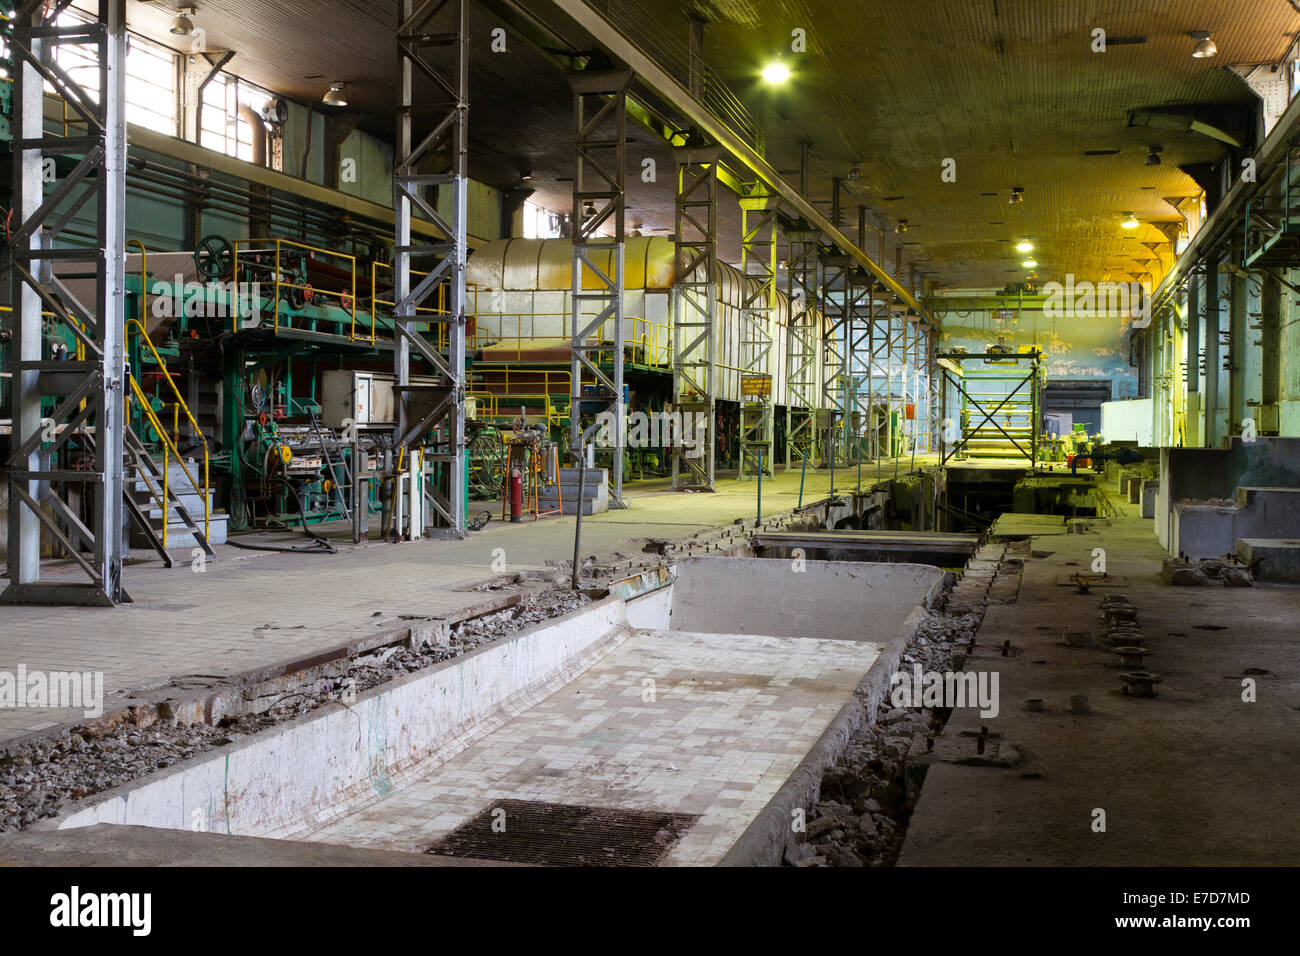 Inside an Old Abandoned Factory - Stock Image